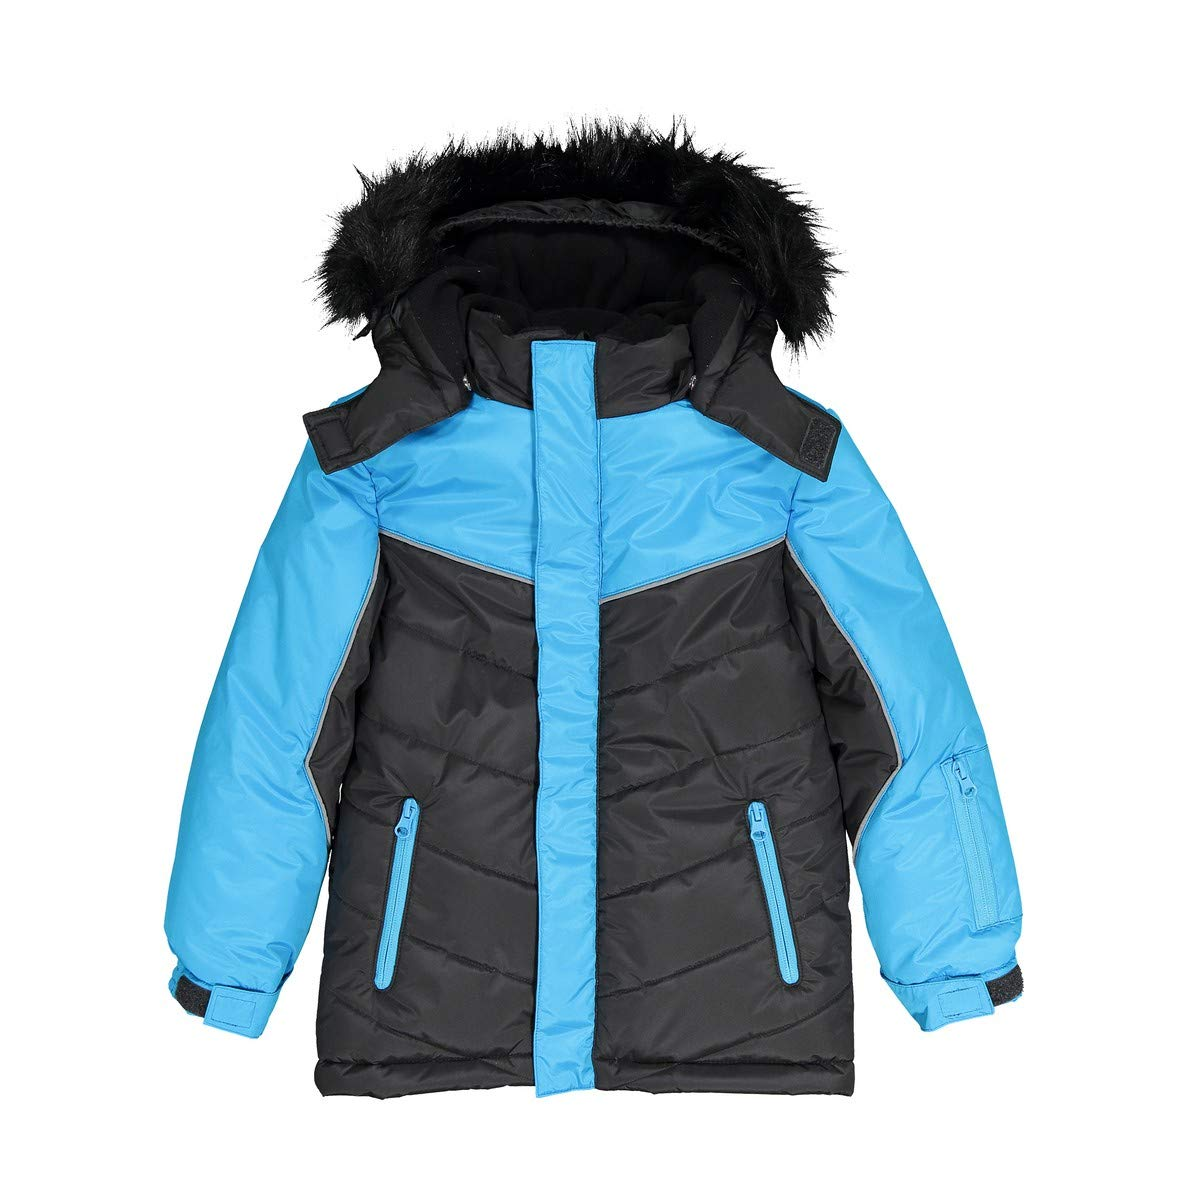 La Redoute Collections Big Boys Ski Jacket, 3-16 Years Blue Size 3 Years by La Redoute (Image #4)